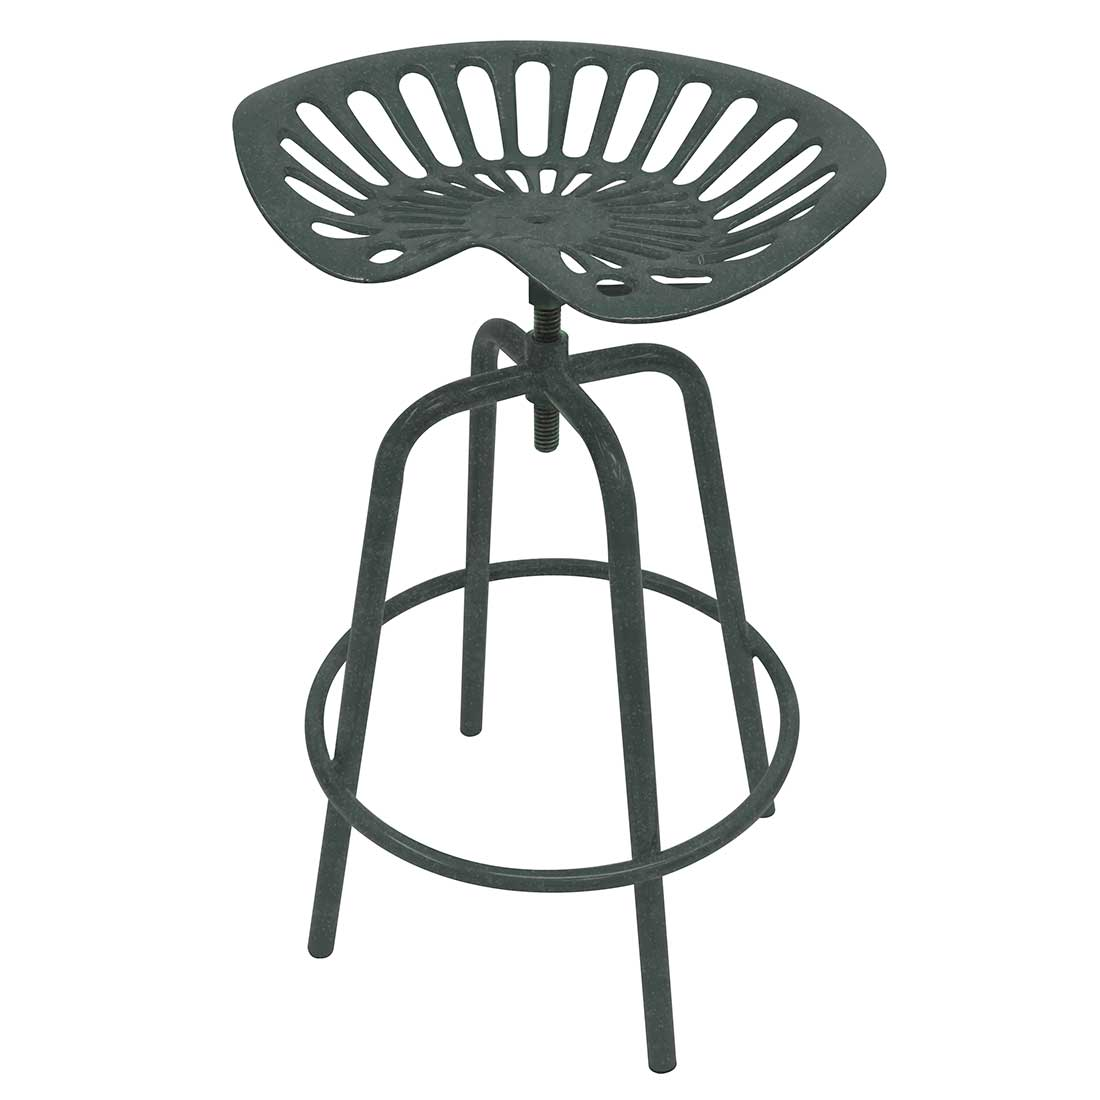 Terrific Tractor Seat Stool Gray Creativecarmelina Interior Chair Design Creativecarmelinacom